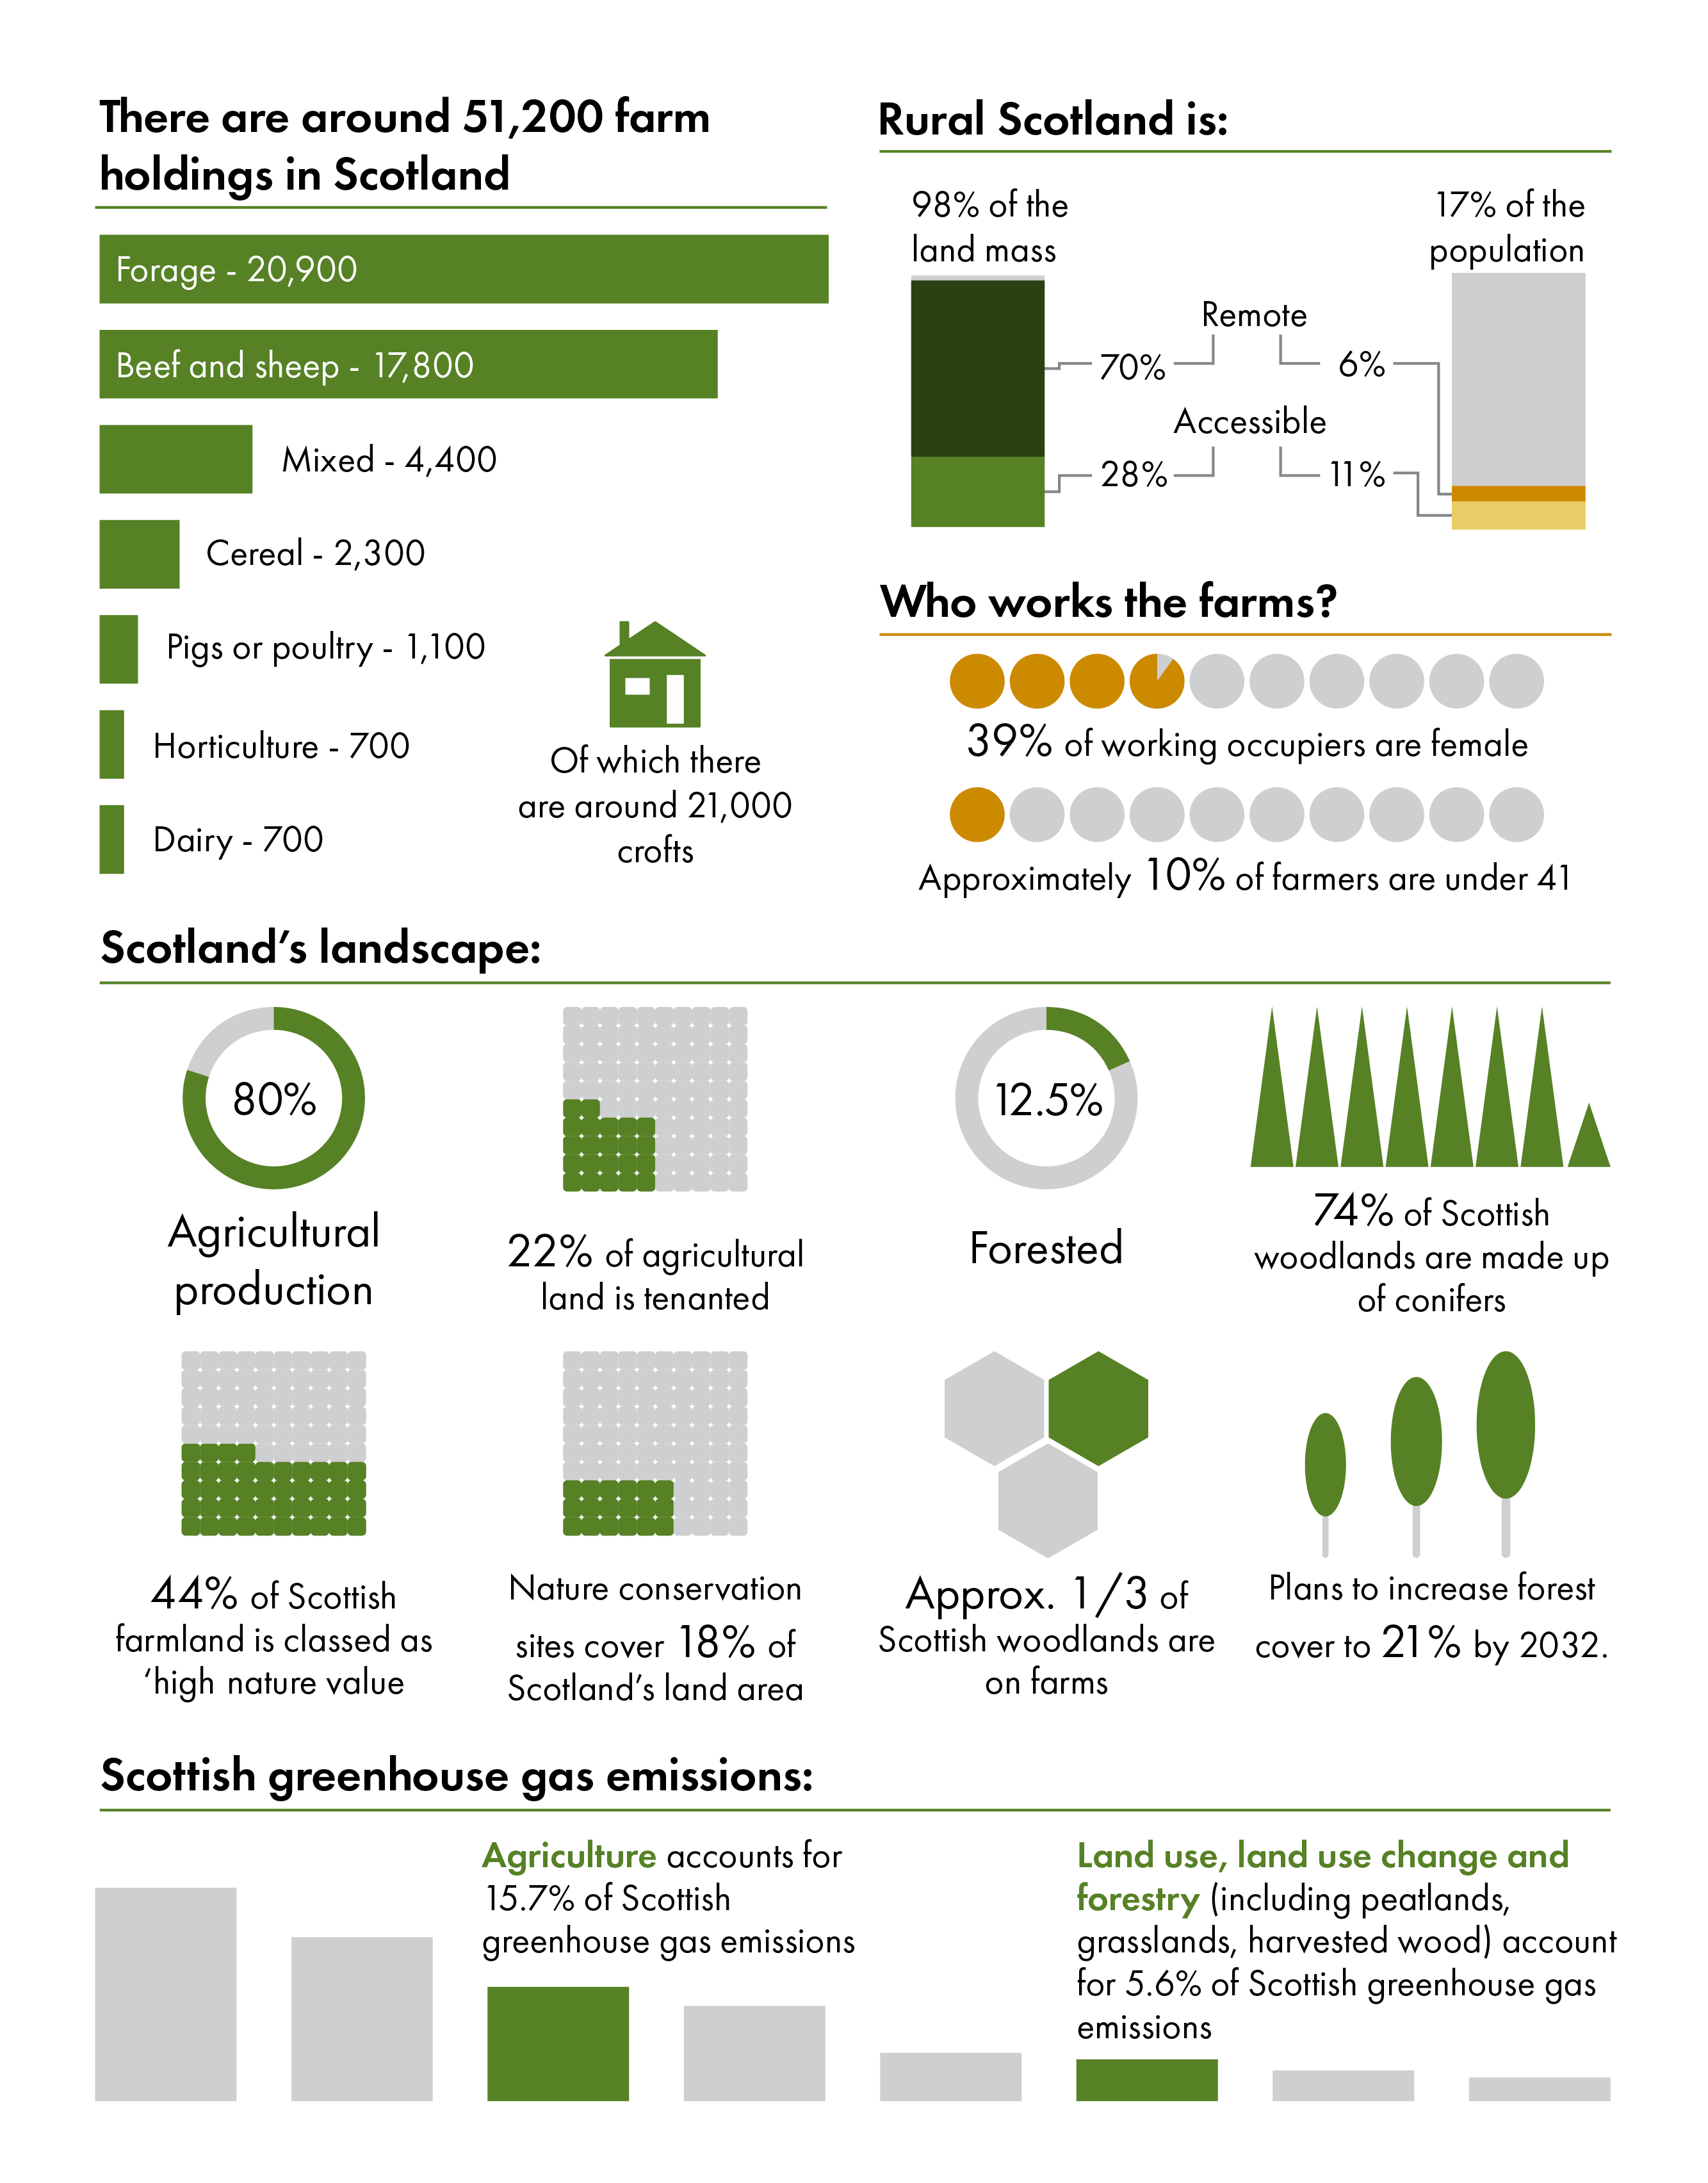 There are around 51,000 farms in Scotland, of which 21,000 are crofts. Forage makes up the largest group with 20,900 holdings, followed by beef and sheep at 17,800, mixed farming at 4,400, cereals at 2,300, pigs and poultry at 1,100, and horticulture and dairy at 700 holdings respectively. Rural Scotland is 98% of the land mass, with accessible rural making up 70% and remote rural 17%. 39% of working occupiers are female, and approximately 10% of farmers are under 41. 80% of Scotland landscape is agricultural land; 44% of which is classed as high nature value farmland. Nature conservation sites cover 18% of Scotland's land area. 22% of Scotland's land is tenanted. 12.5% of Scotland is forested, and 1/3 of these forests are on farms. 74% of Scottish woodlands are made up of conifers, and there are plans to increase Scotland's forests to 21% by 2032. Agriculture accounts for 15.7% of Scotland's greenhouse gas emissions; land use, land use change and forestry accounts for 5.6%.